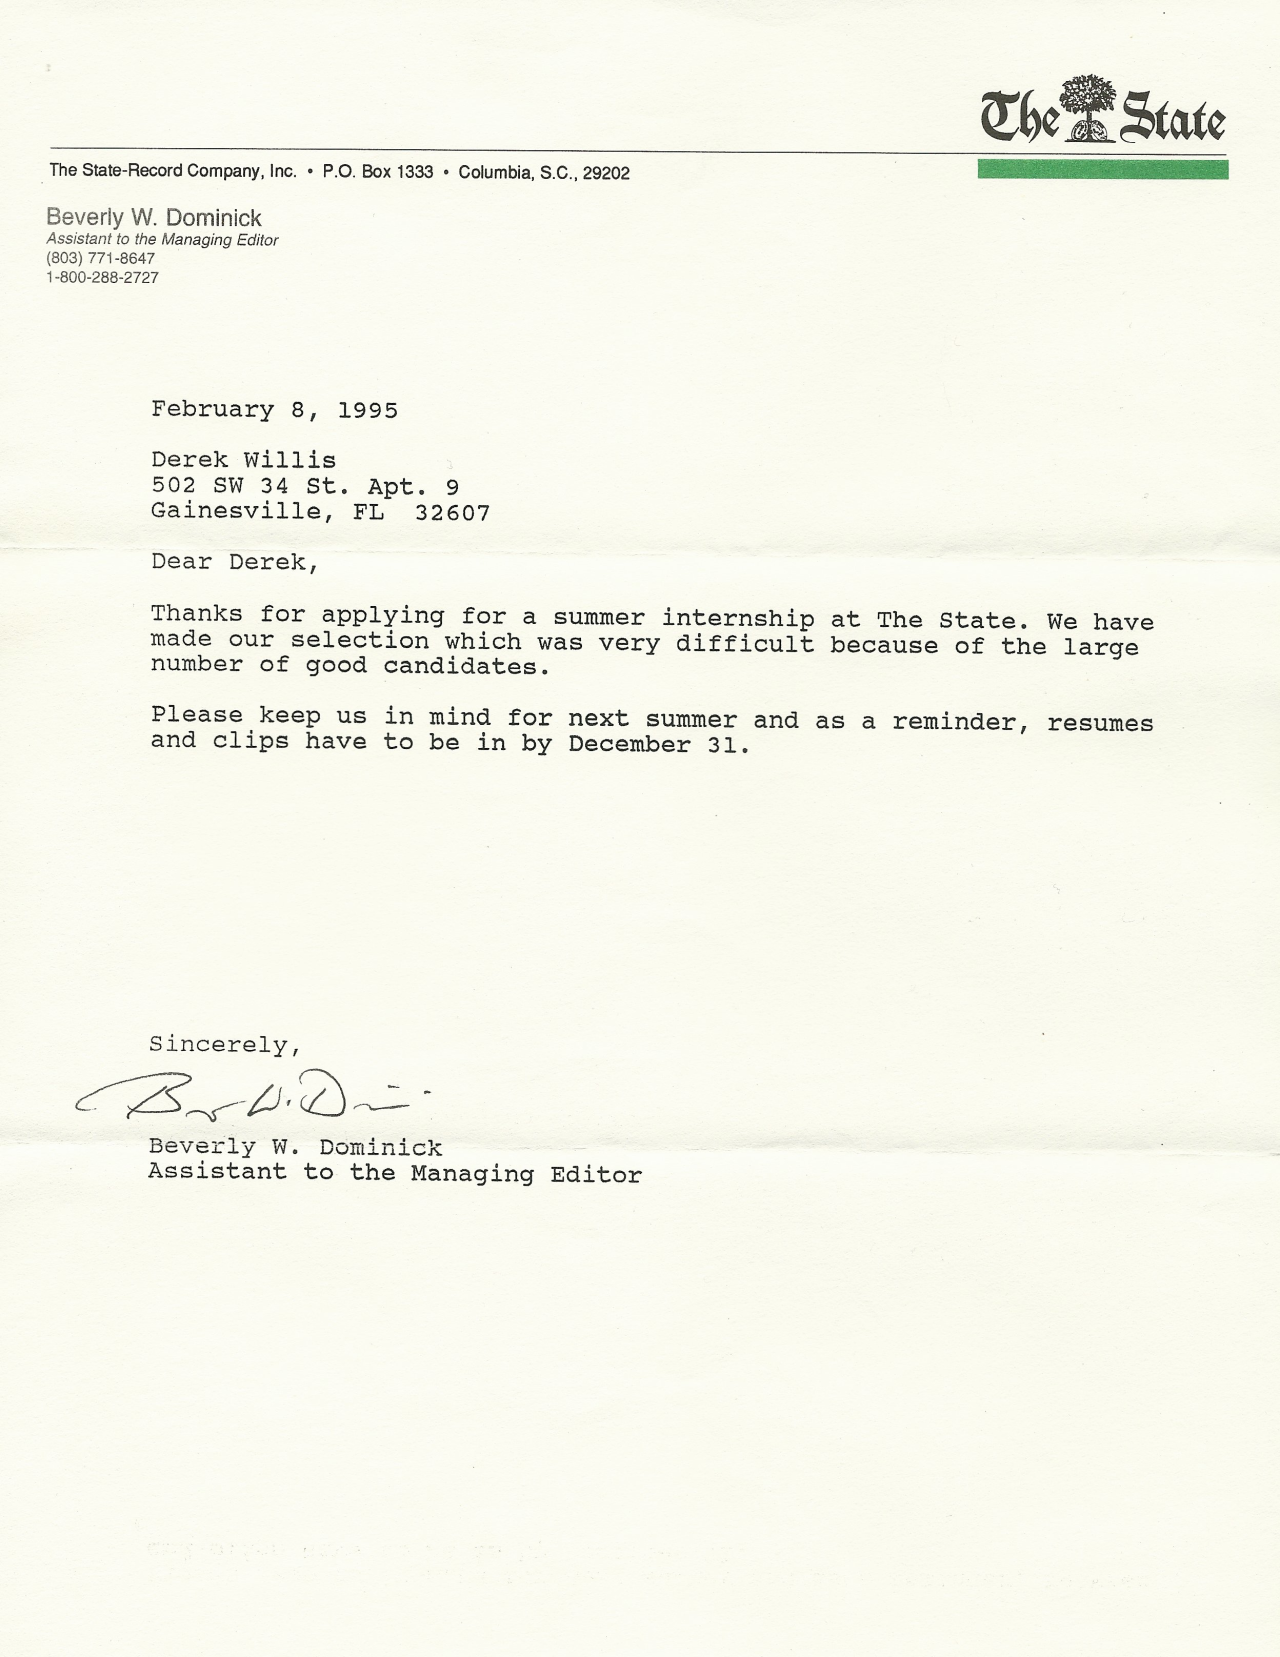 The State rejection letter